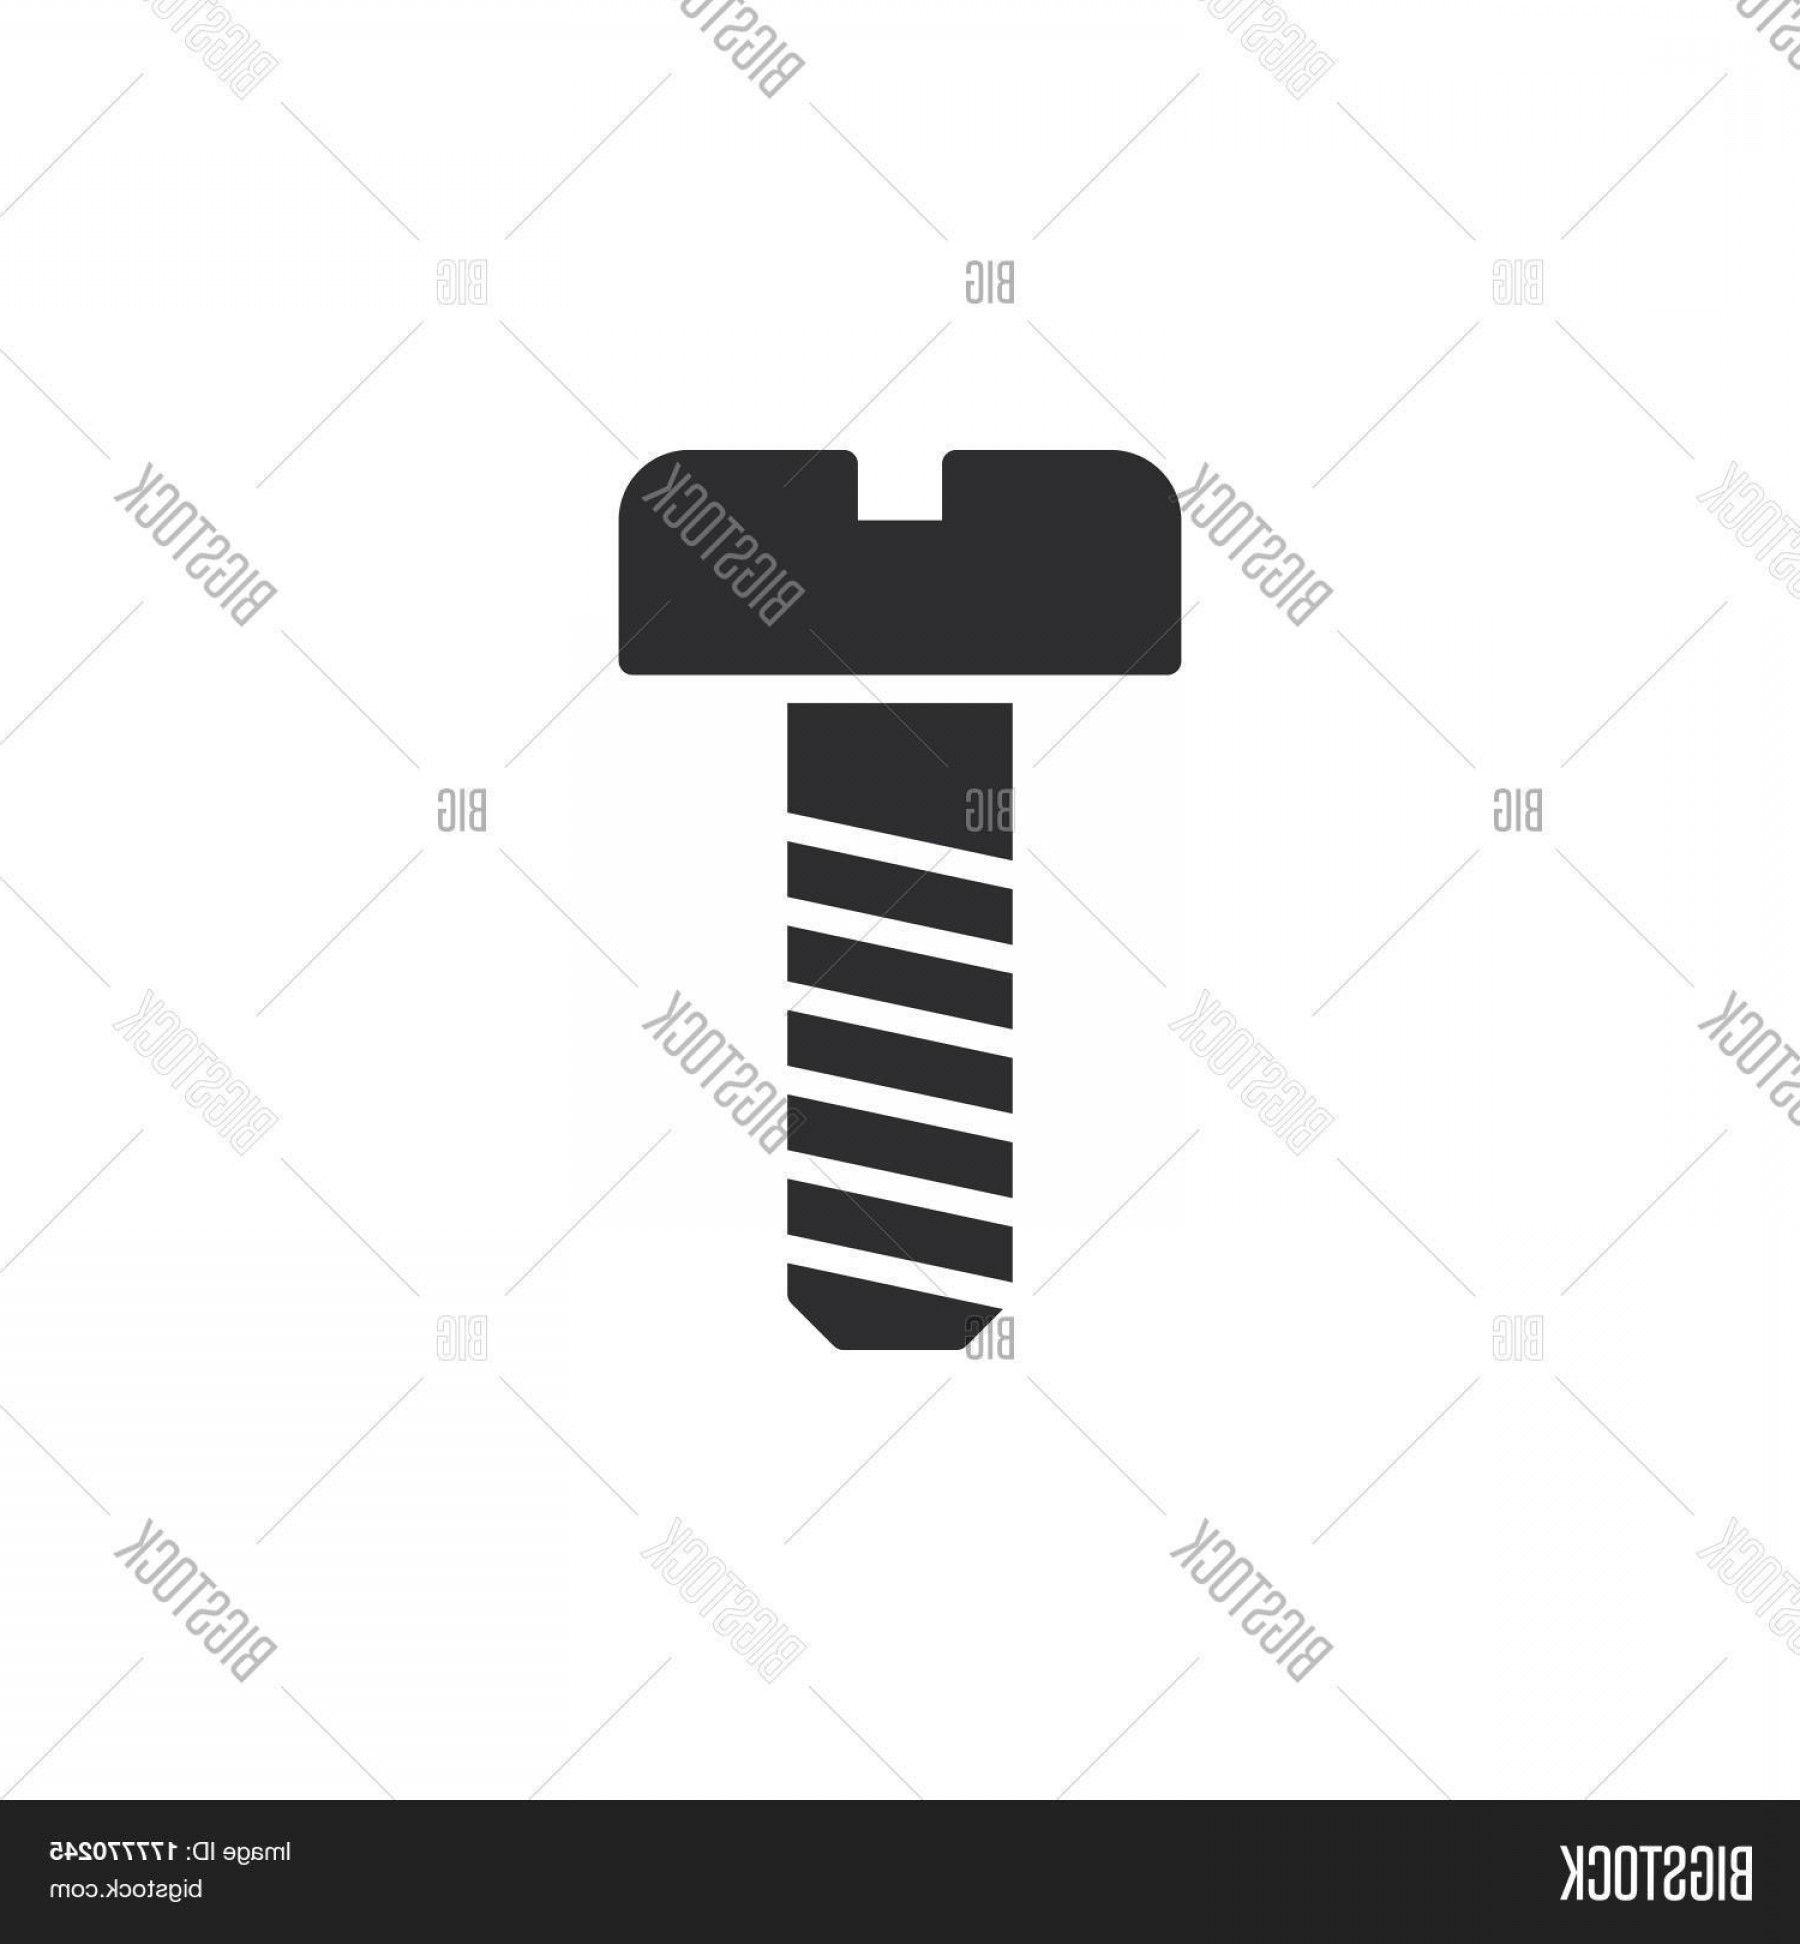 Screw Vector: Stock Vector Bolt Screw Icon Vector Filled Flat Sign Solid Pictogram Isolated On White Symbol Logo Illustration